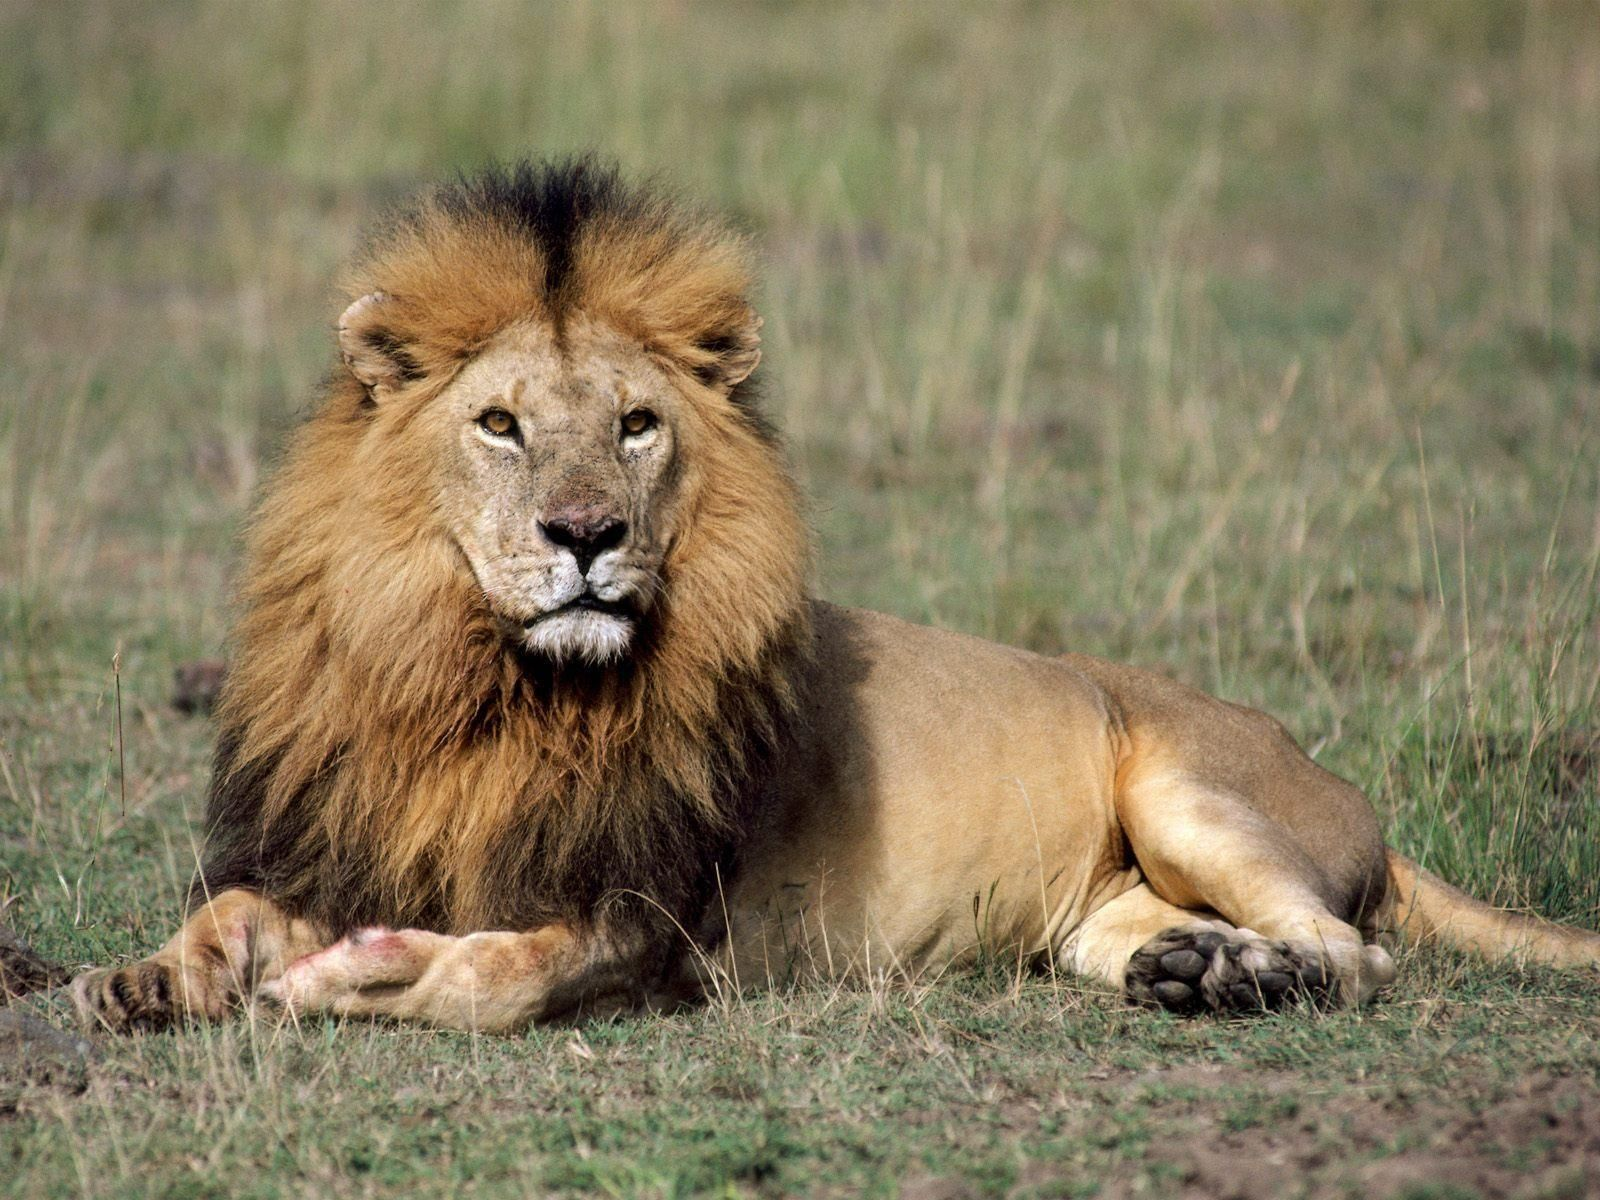 This article is about some of the most significant lion facts for